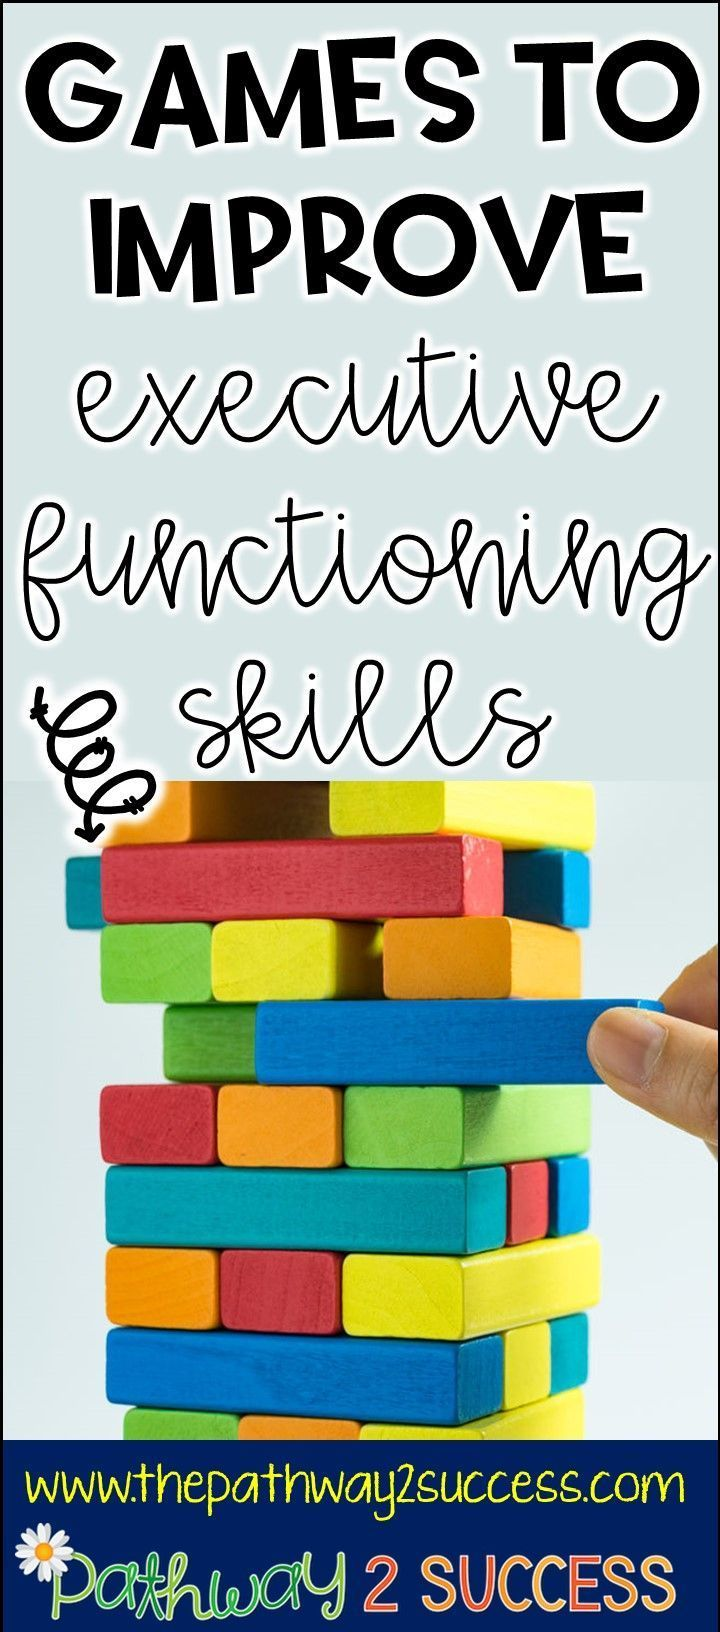 Games that you can play to practice and improve executive functioning skills